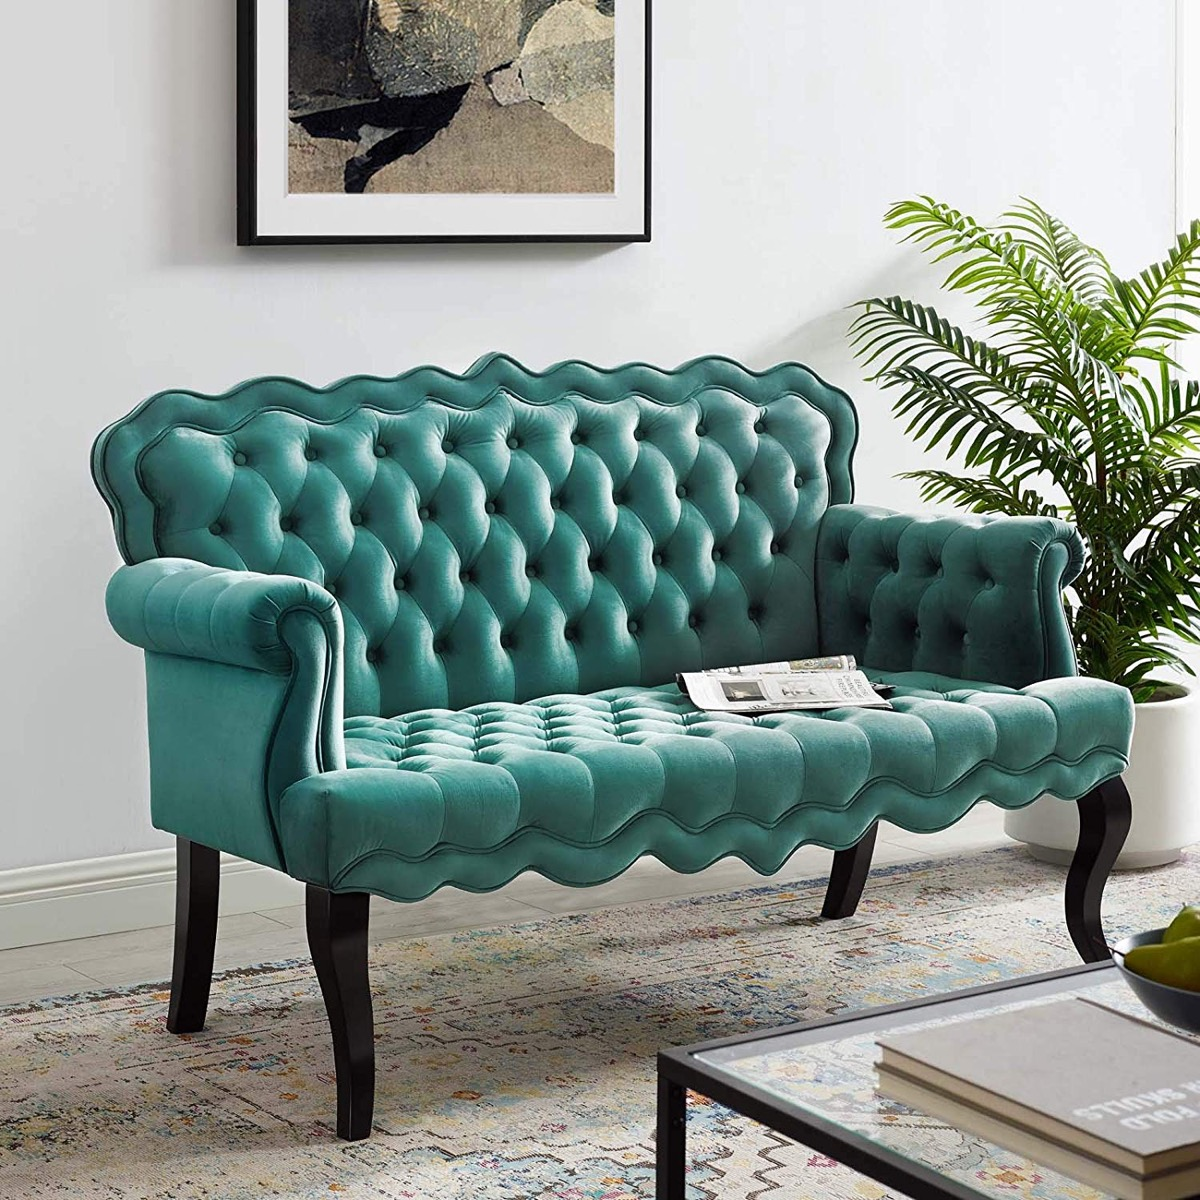 adorable-french-teal-tufted-sofa-with-scalloped-edges-cabriole-legs-and-velvet-upholstery